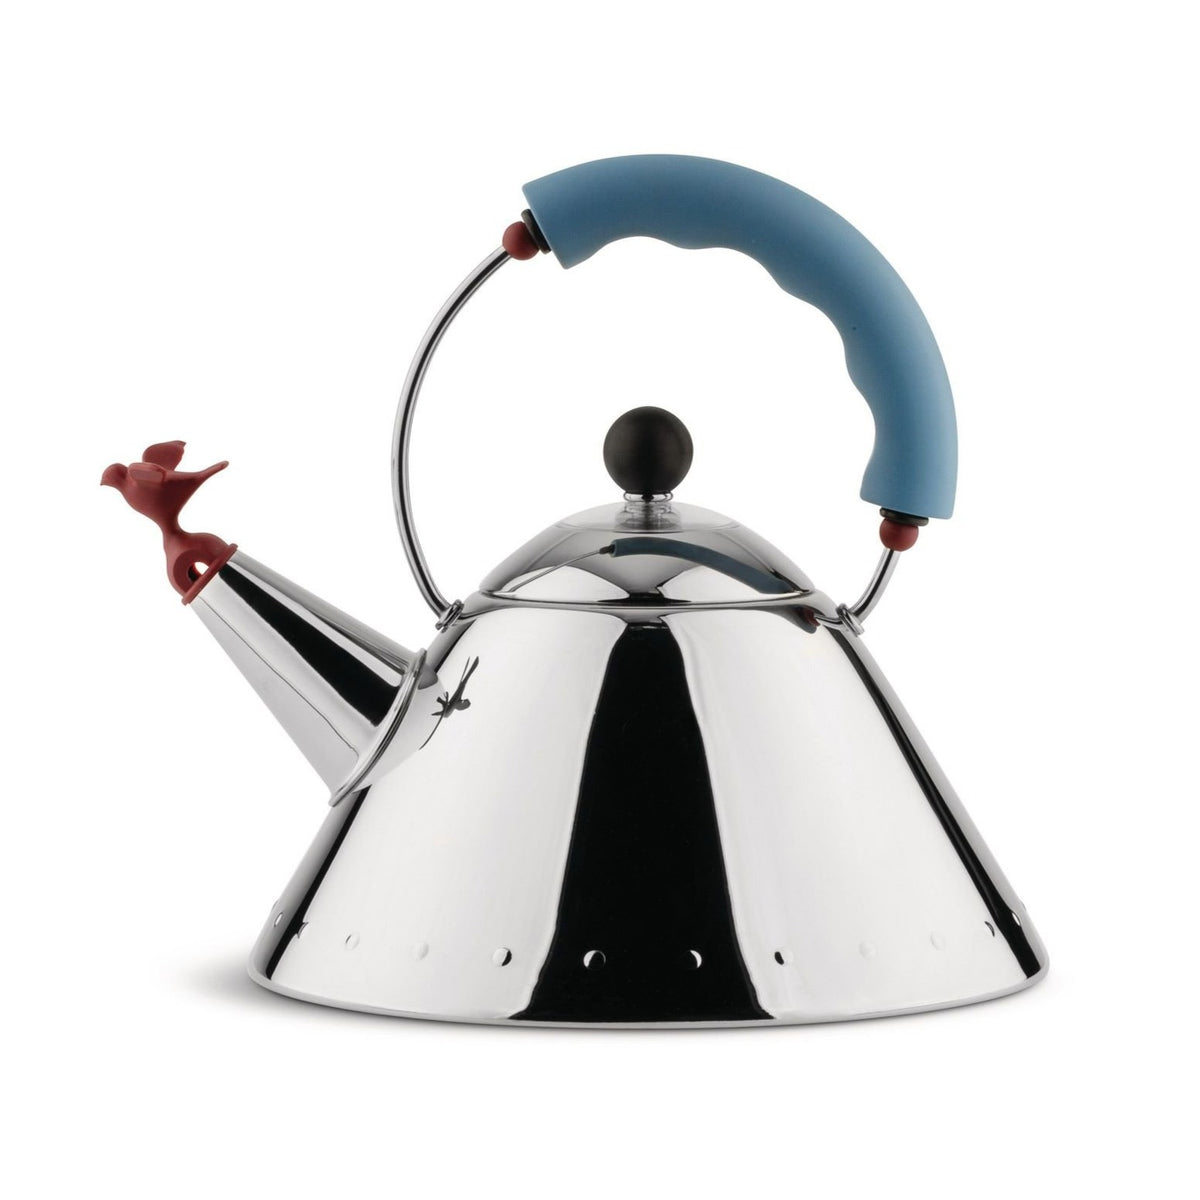 Michael Graves Tea Kettle with Blue Handle